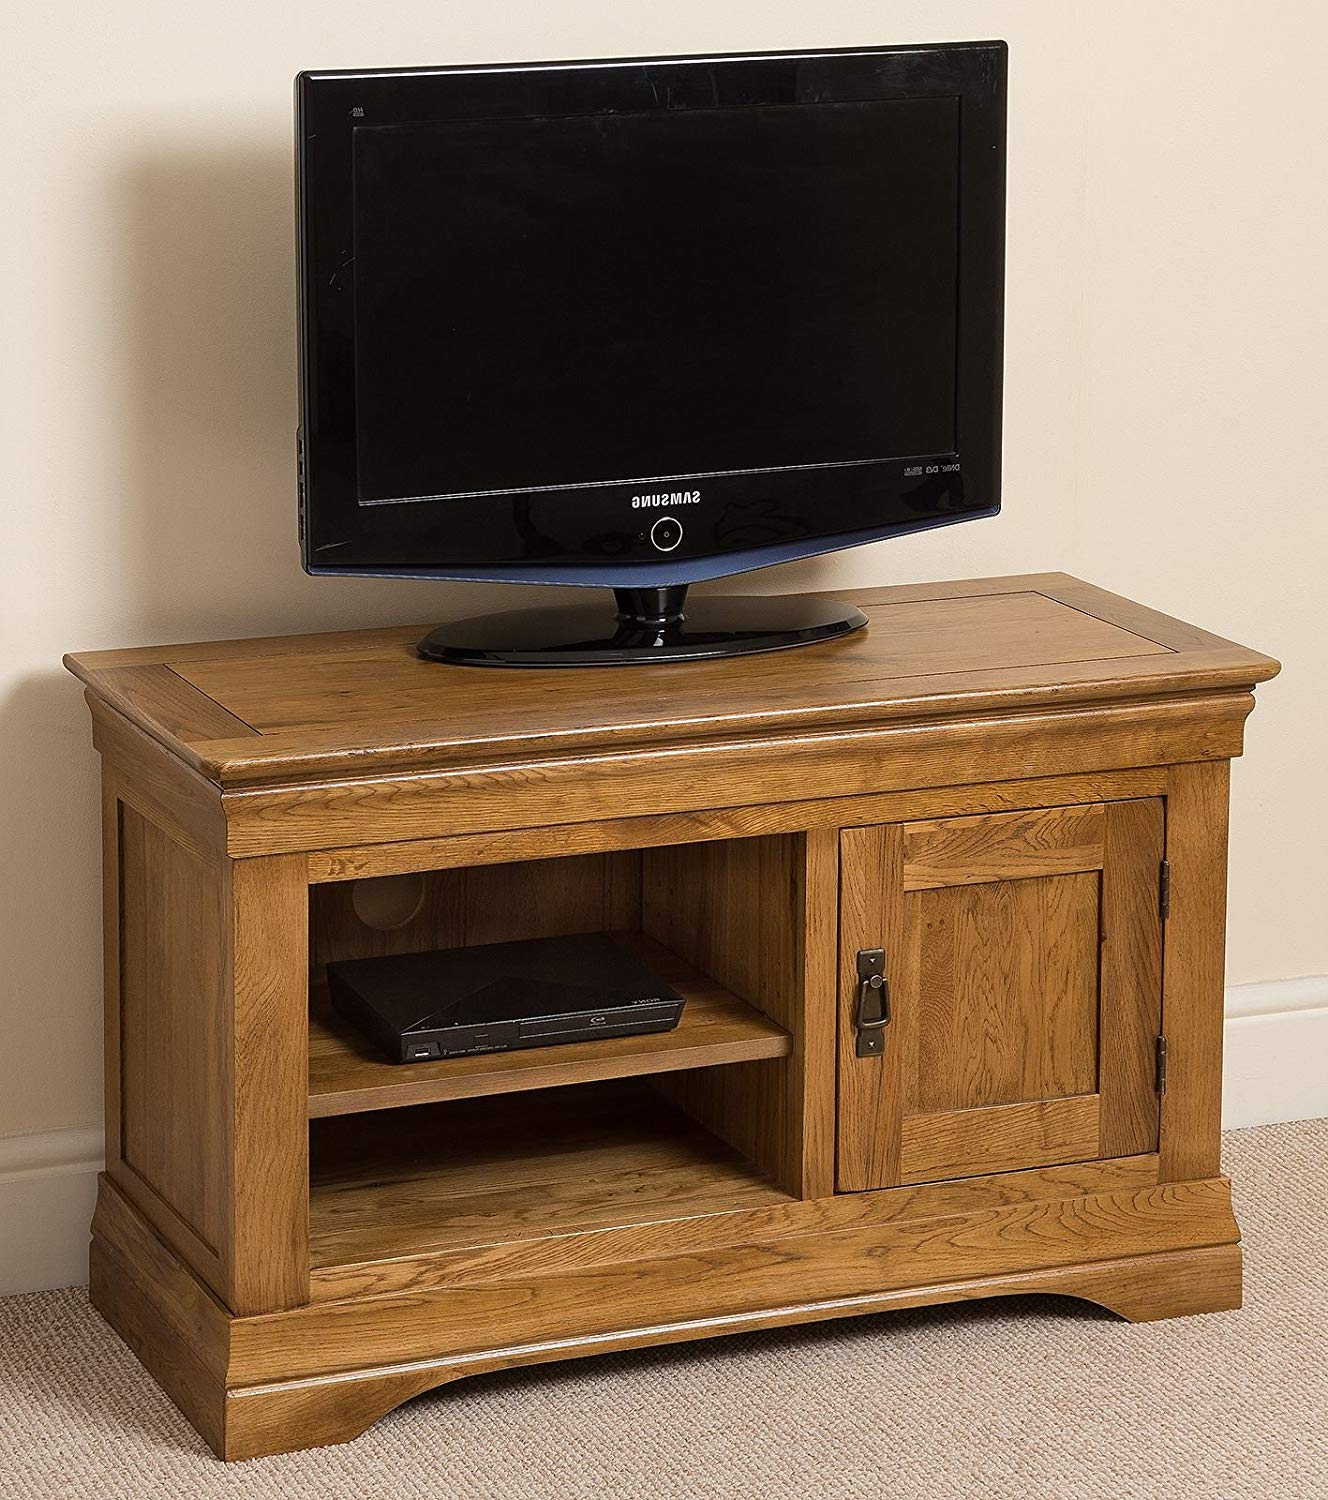 Small Oak Tv Cabinets Regarding Fashionable Oak Furniture King French Rustic Solid Oak Small Tv Unit Stand/dvd (Gallery 7 of 20)